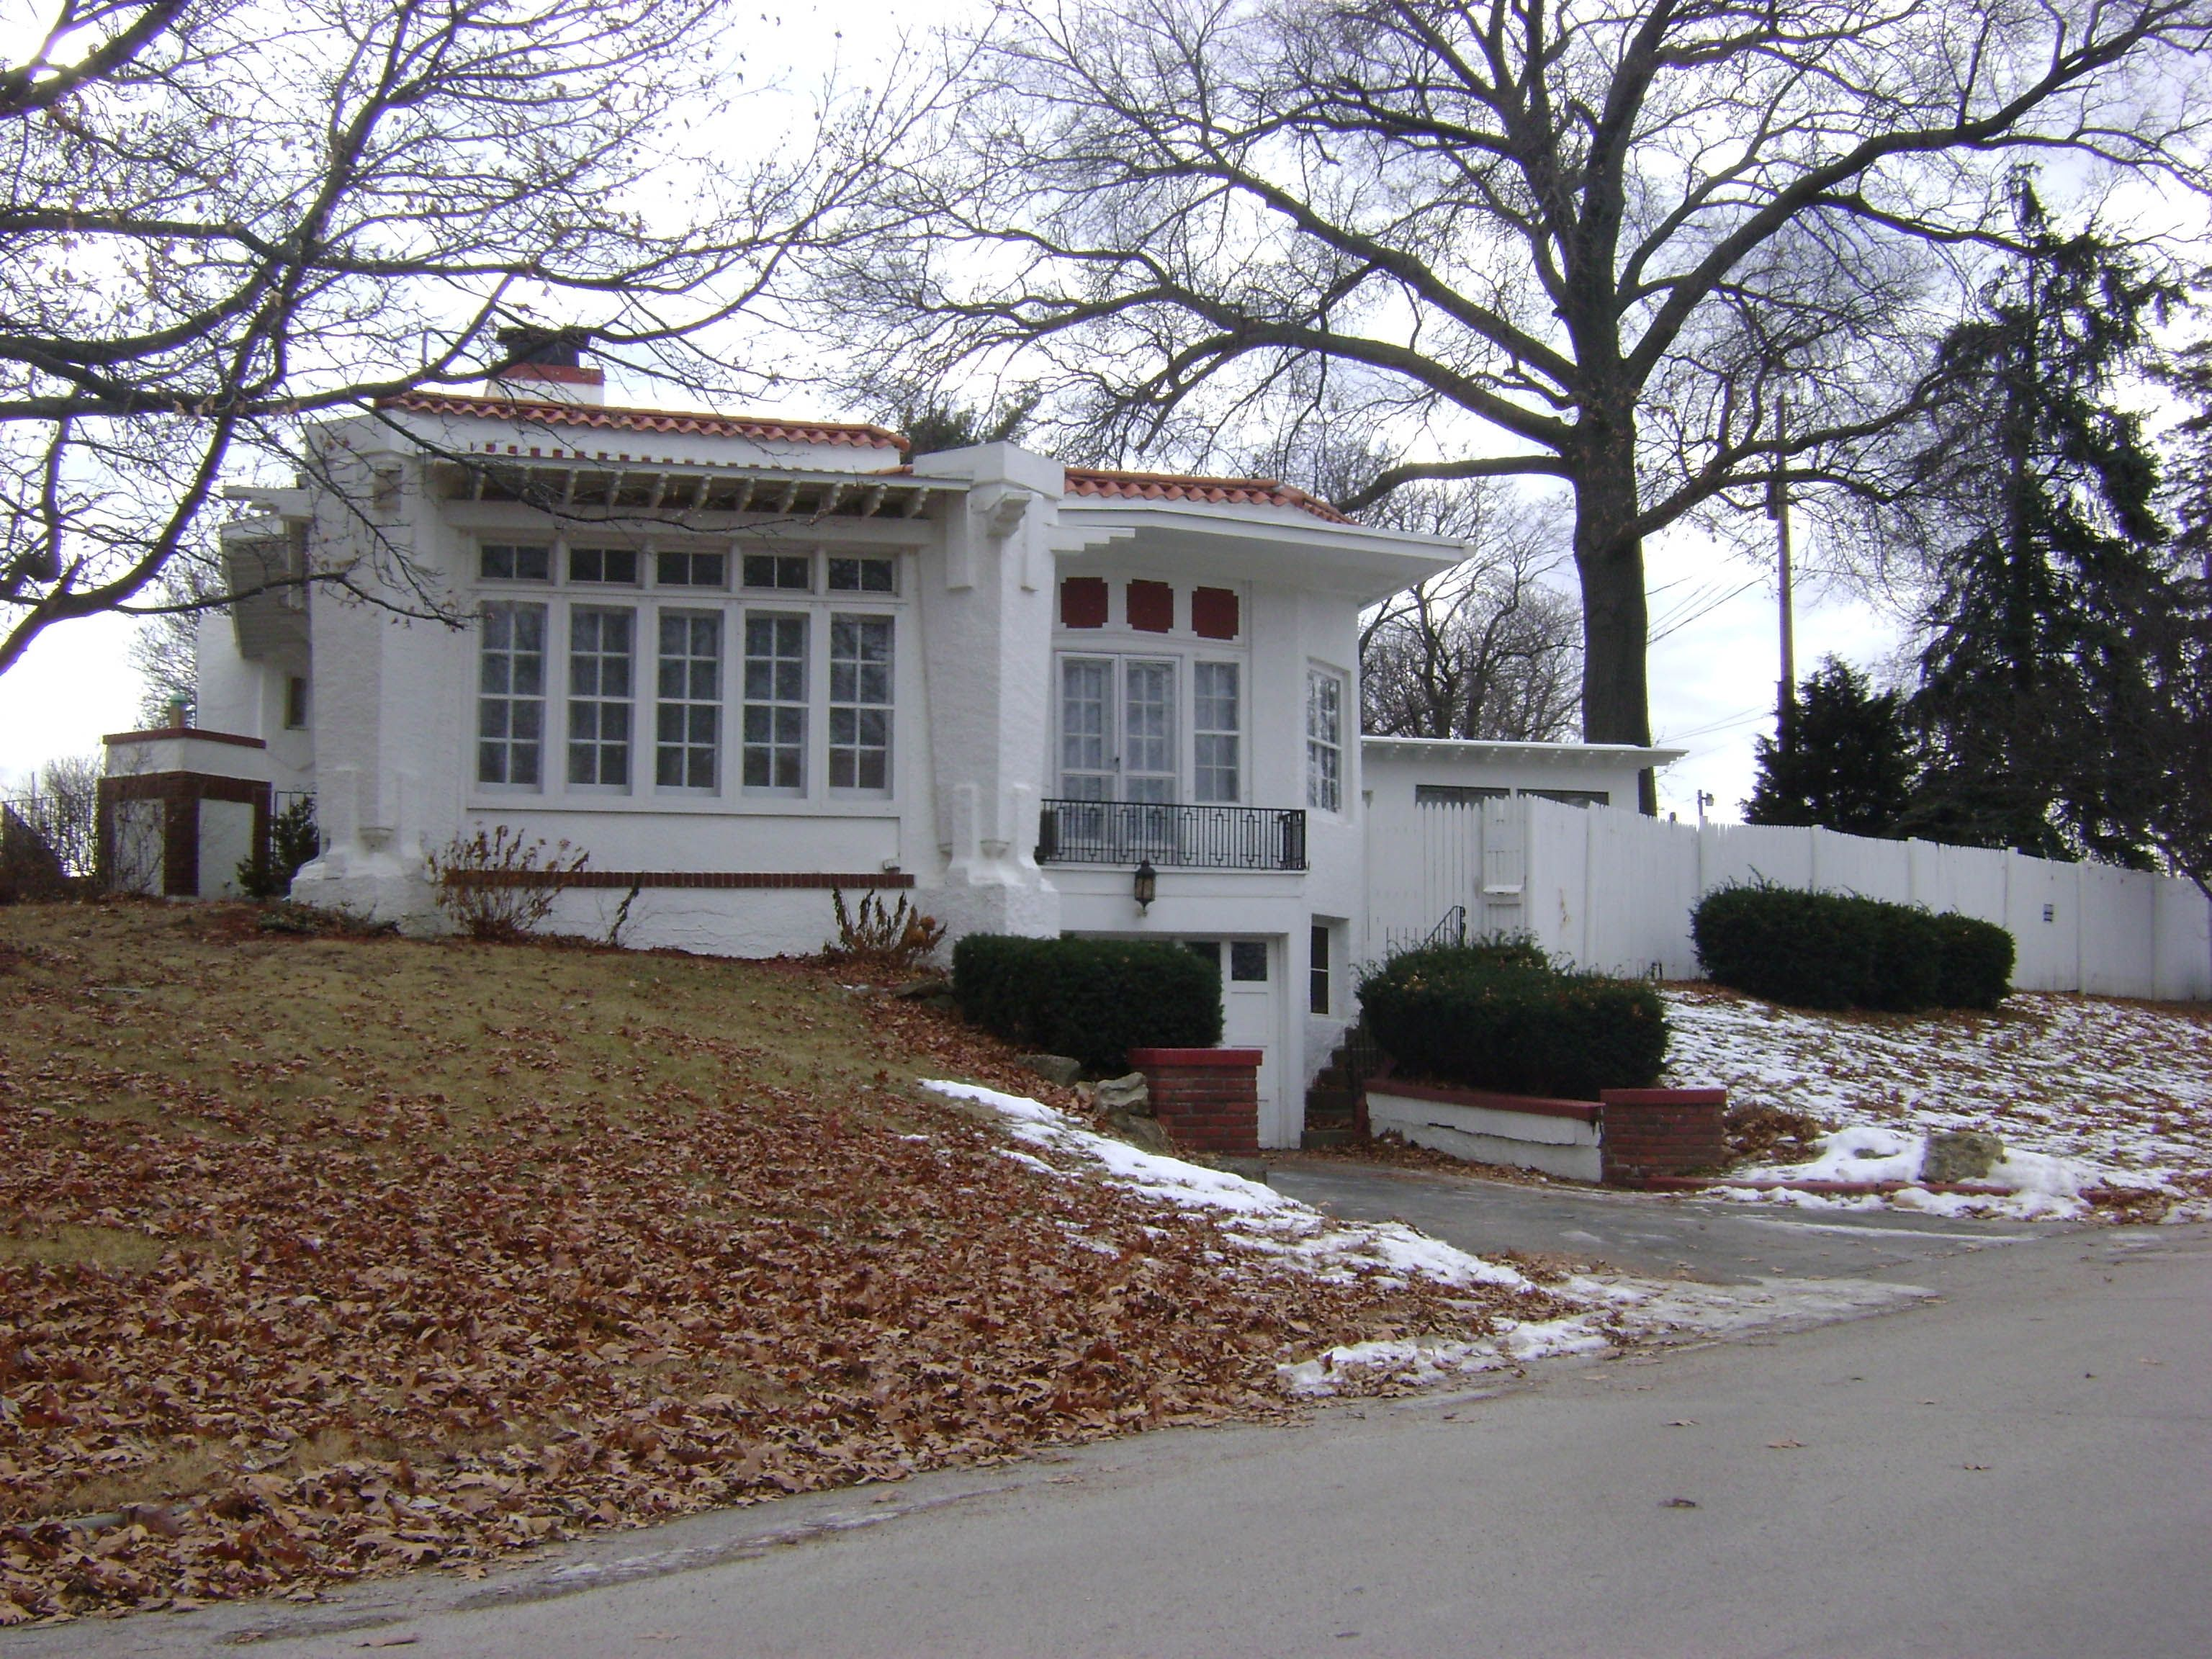 Prairie harry miller house kansas city wyandotte county built 1921 39 119305 94 654651 early modern house using an eclectic mix of louis curtisss